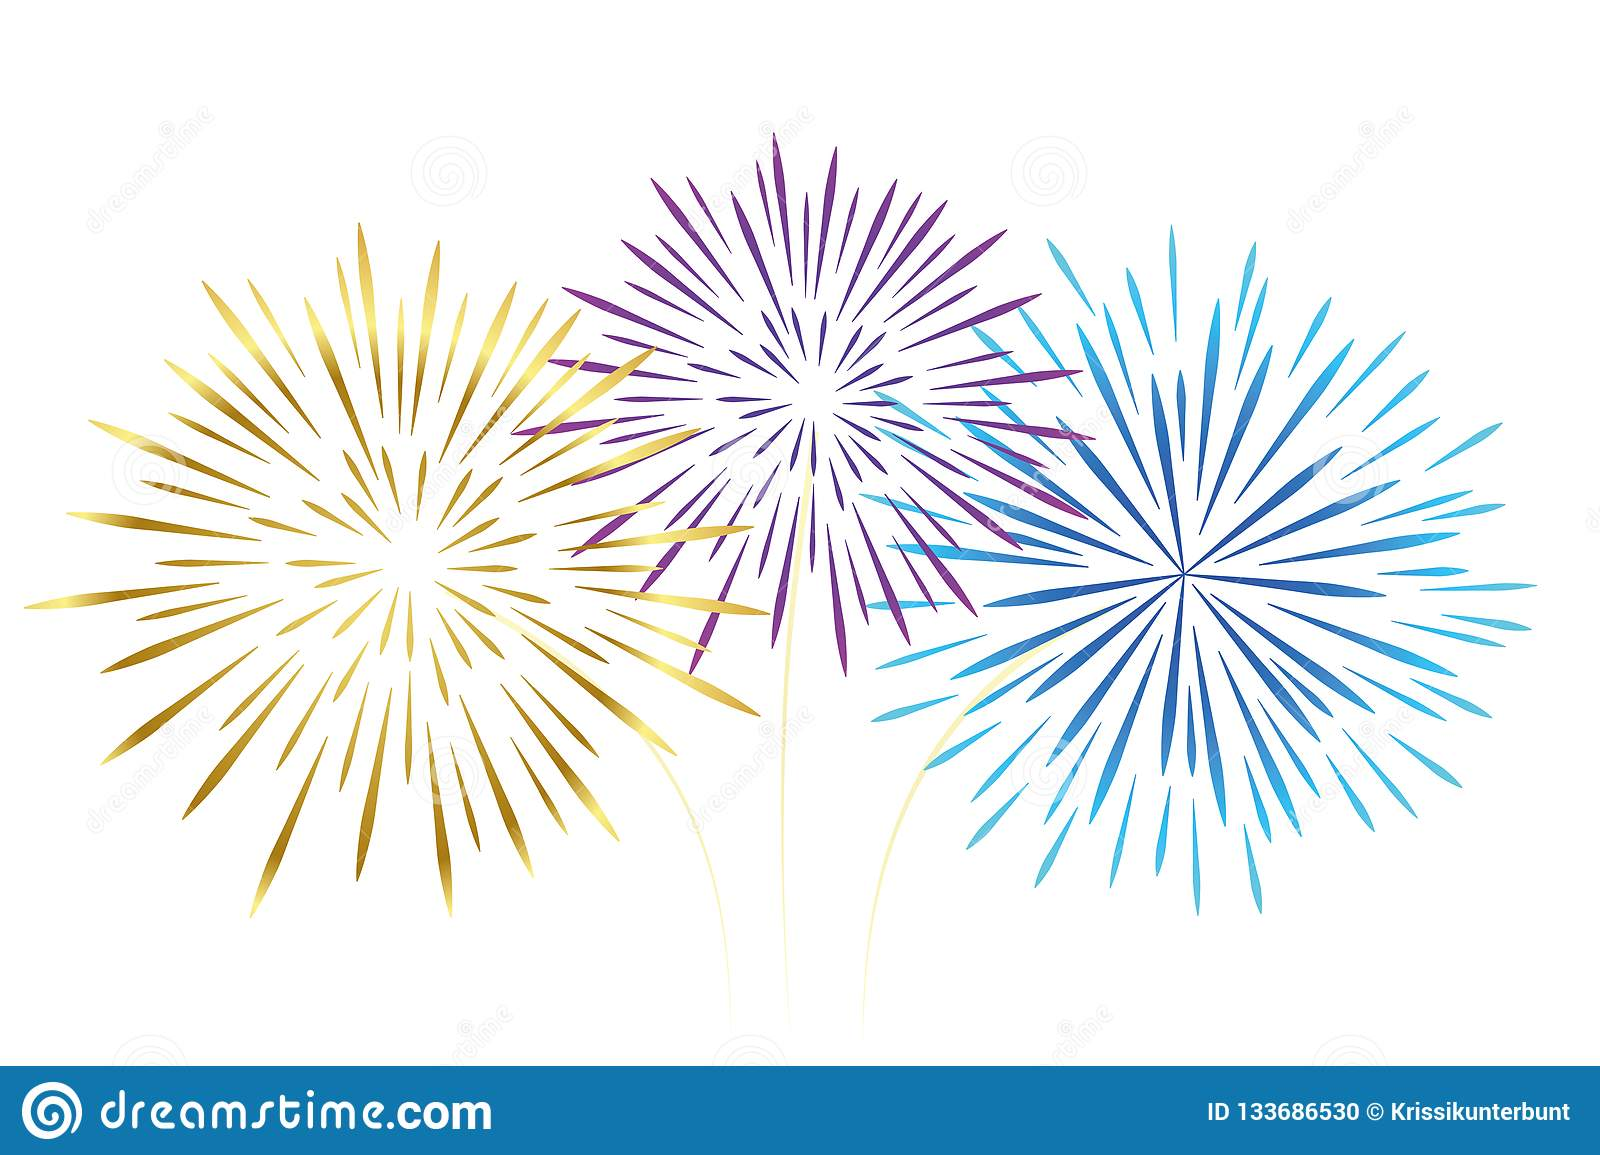 Colorful fireworks gold pink and blue isolated on white background